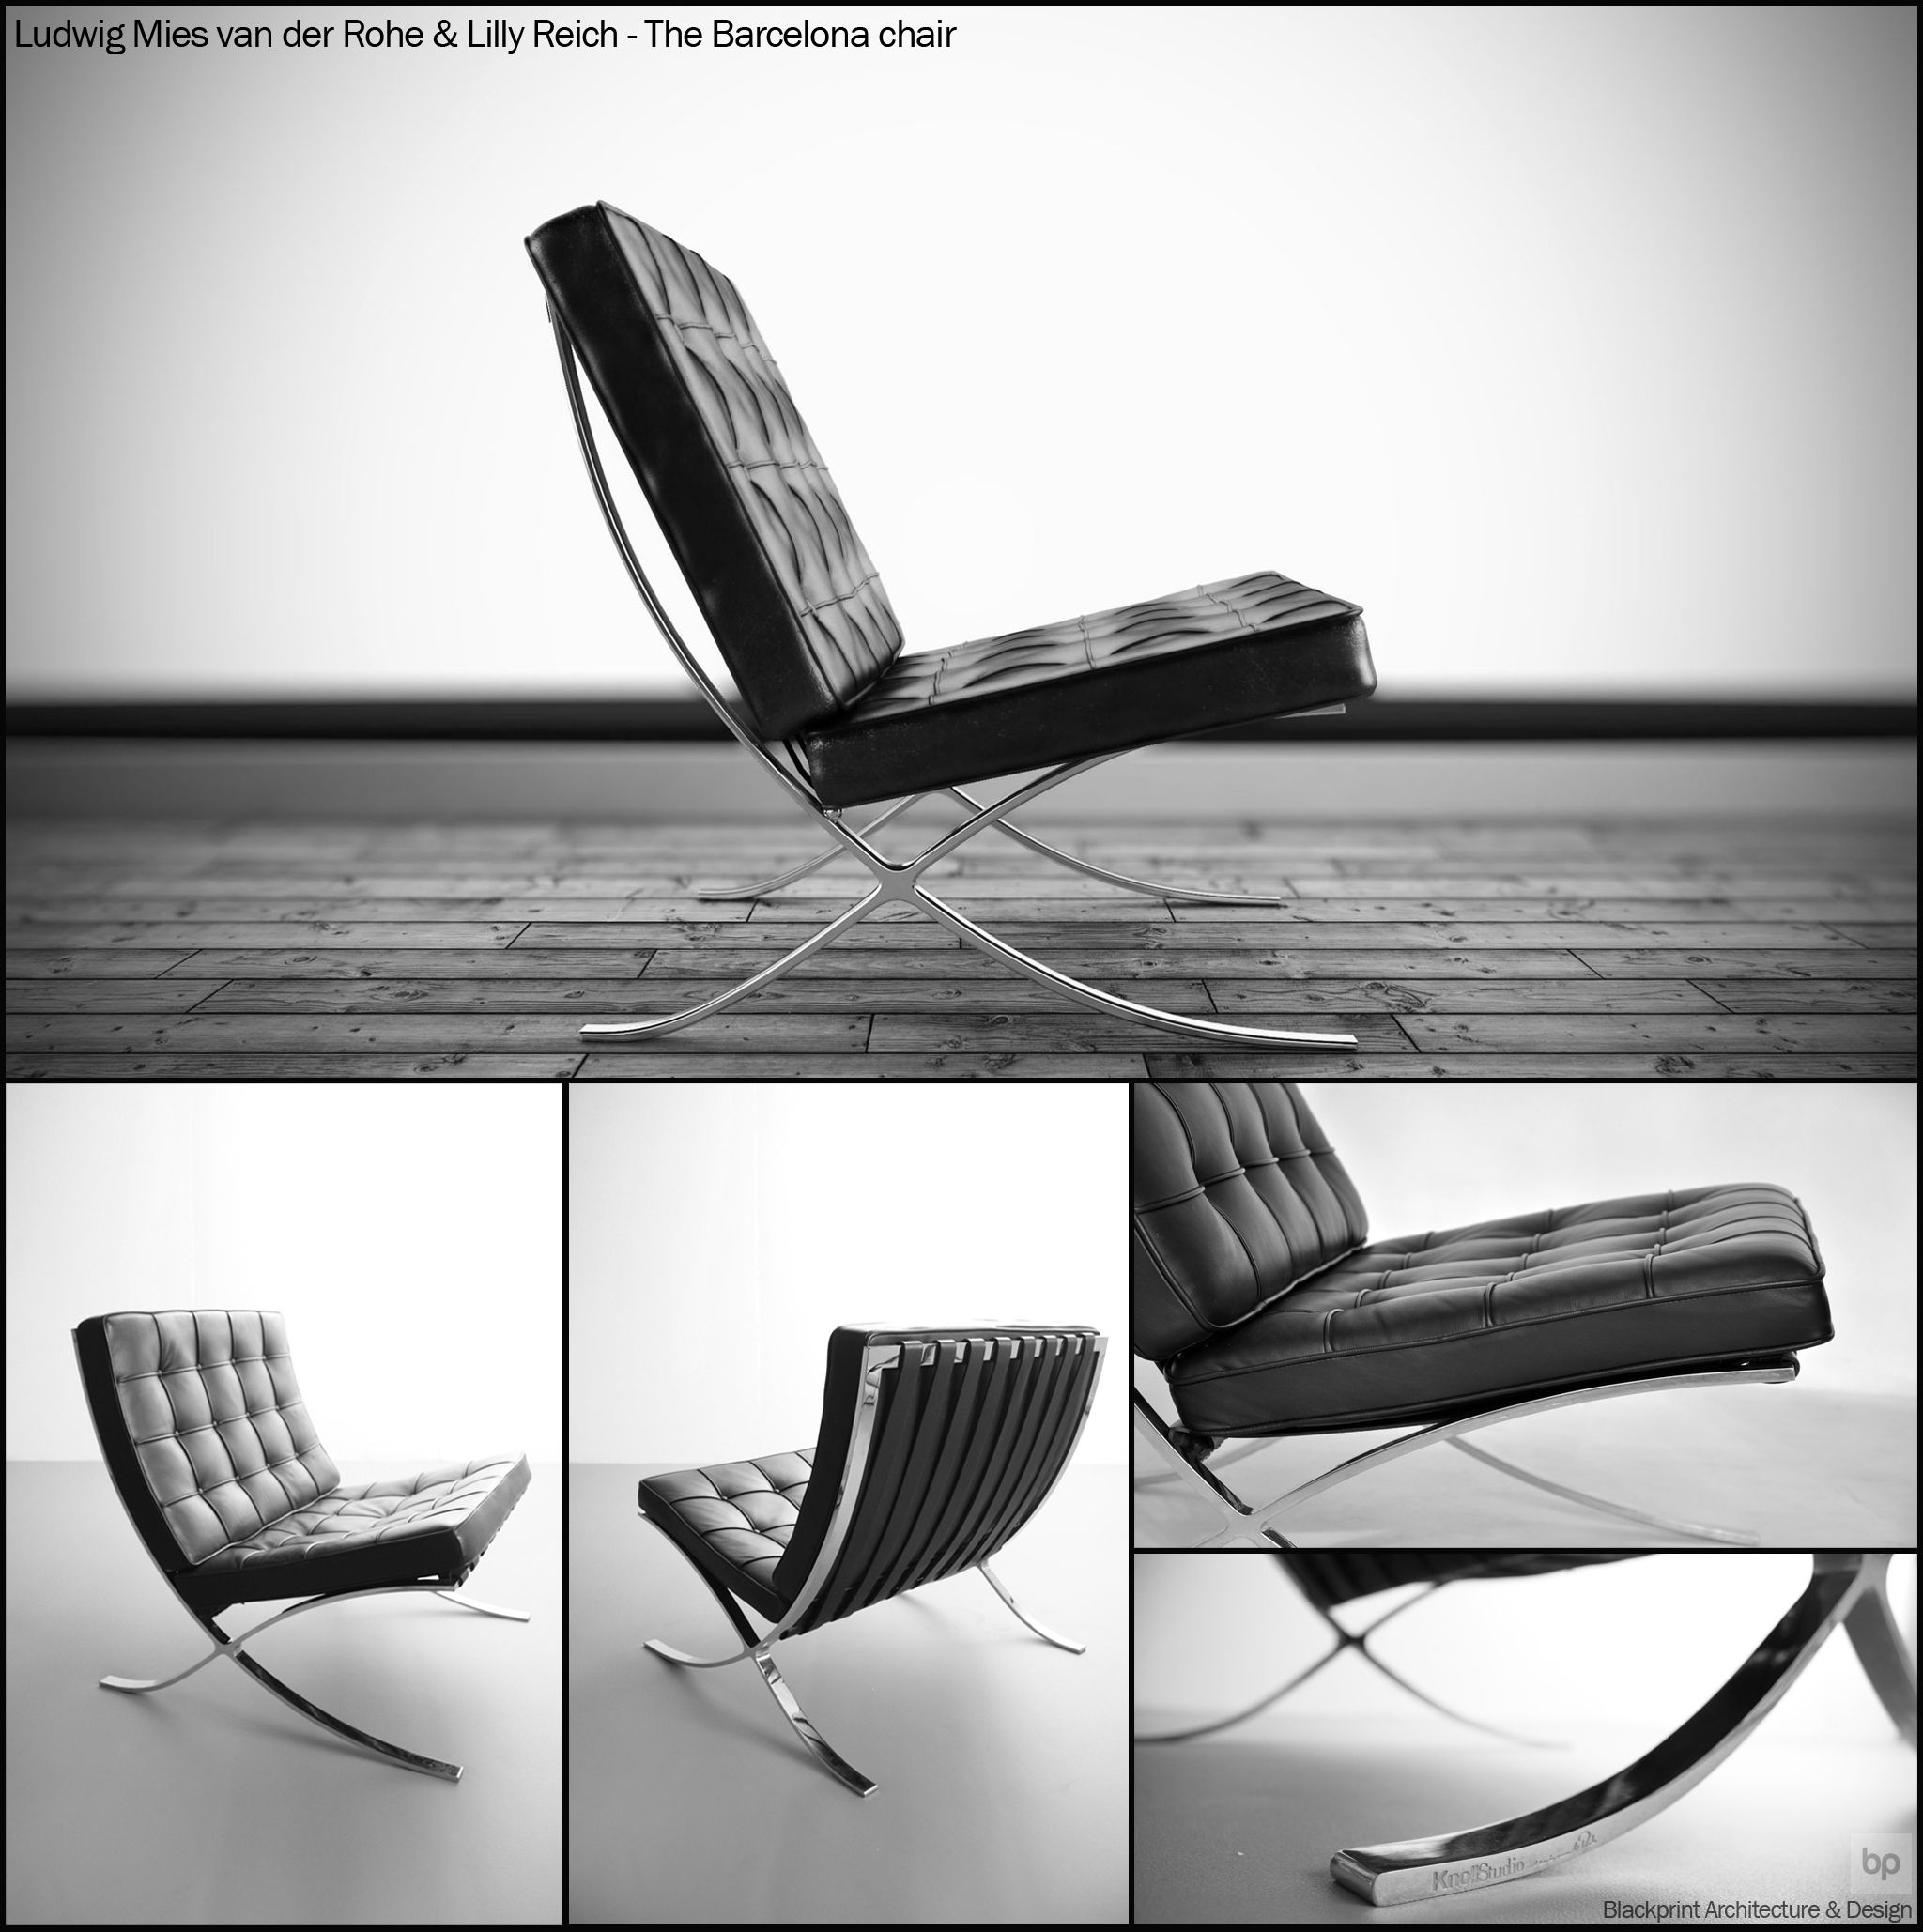 The Barcelona Chair Mies Van Der Rohe Lilly Reich The Barcelona